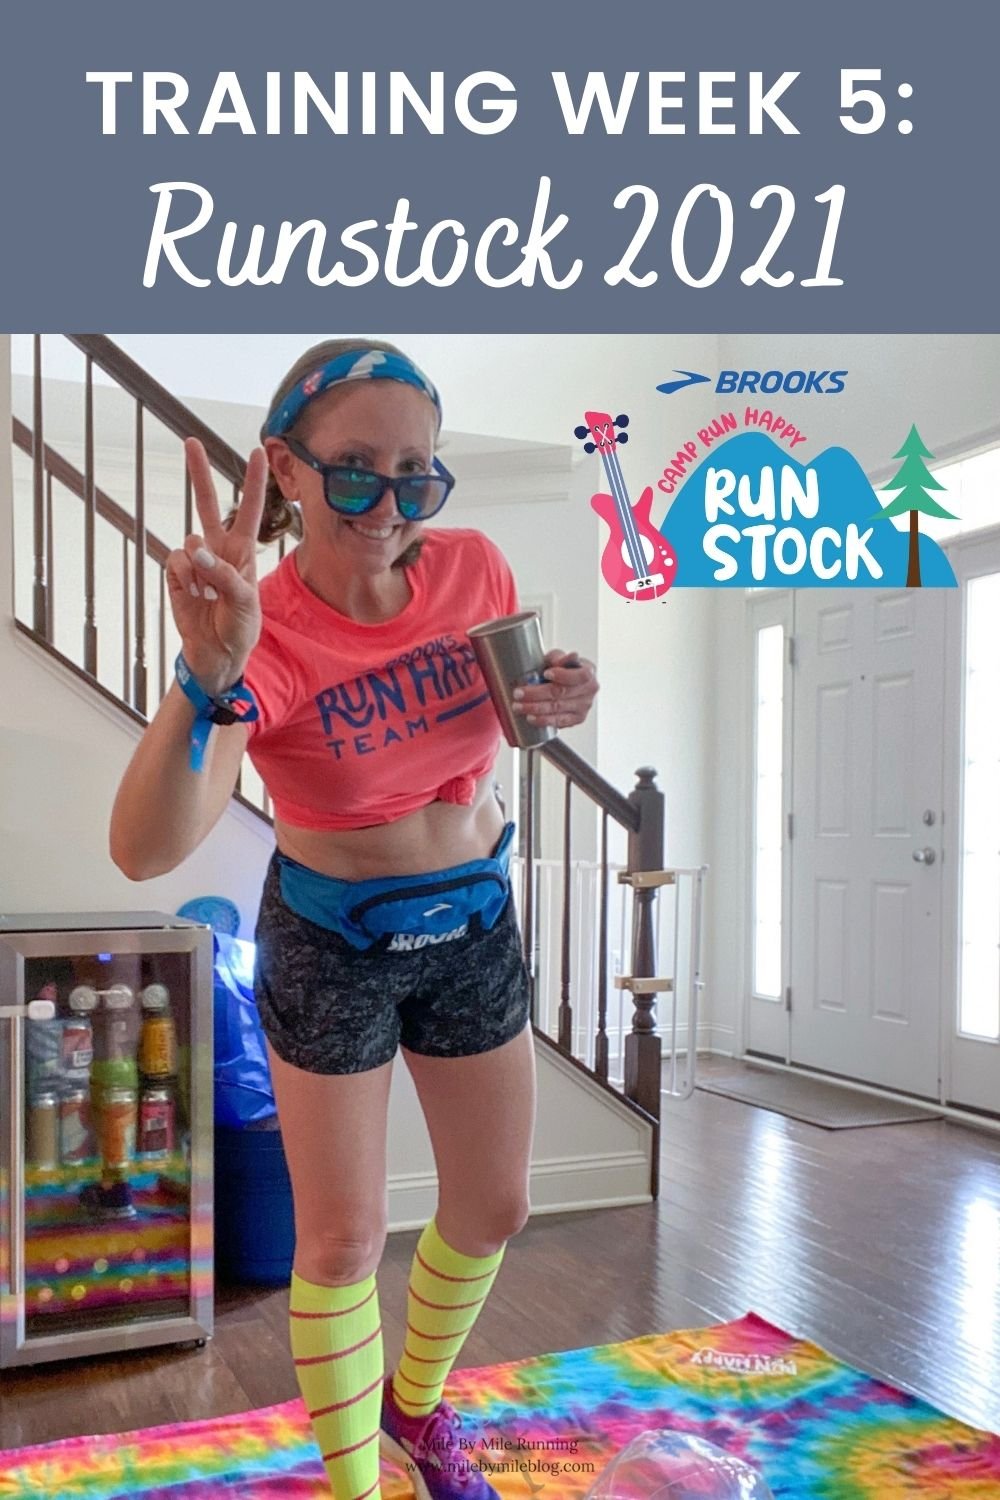 Week 5 of marathon training is already complete! My runs are still pretty manageable and my mileage hasn't been much higher than usual. This week was extra fun because it was Runstock 2021! Let's take a look at training week 5 and Runstock 2021.